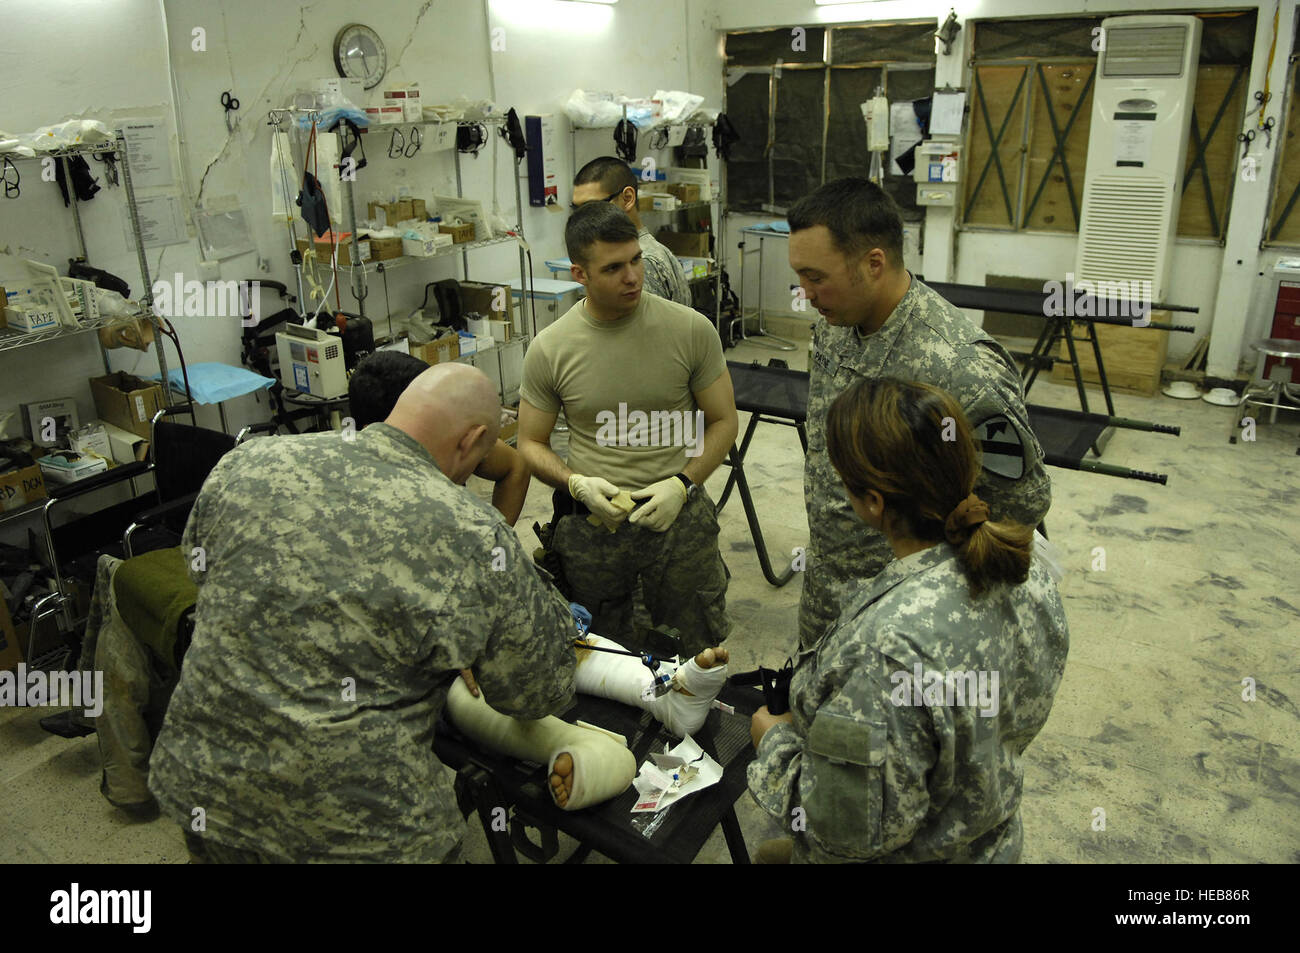 U.S. Army medics from the 6th Squadron, 9th Armored Reconnaissance Regiment, 3rd Brigade Combat Team, 1st Cavalry Stock Photo